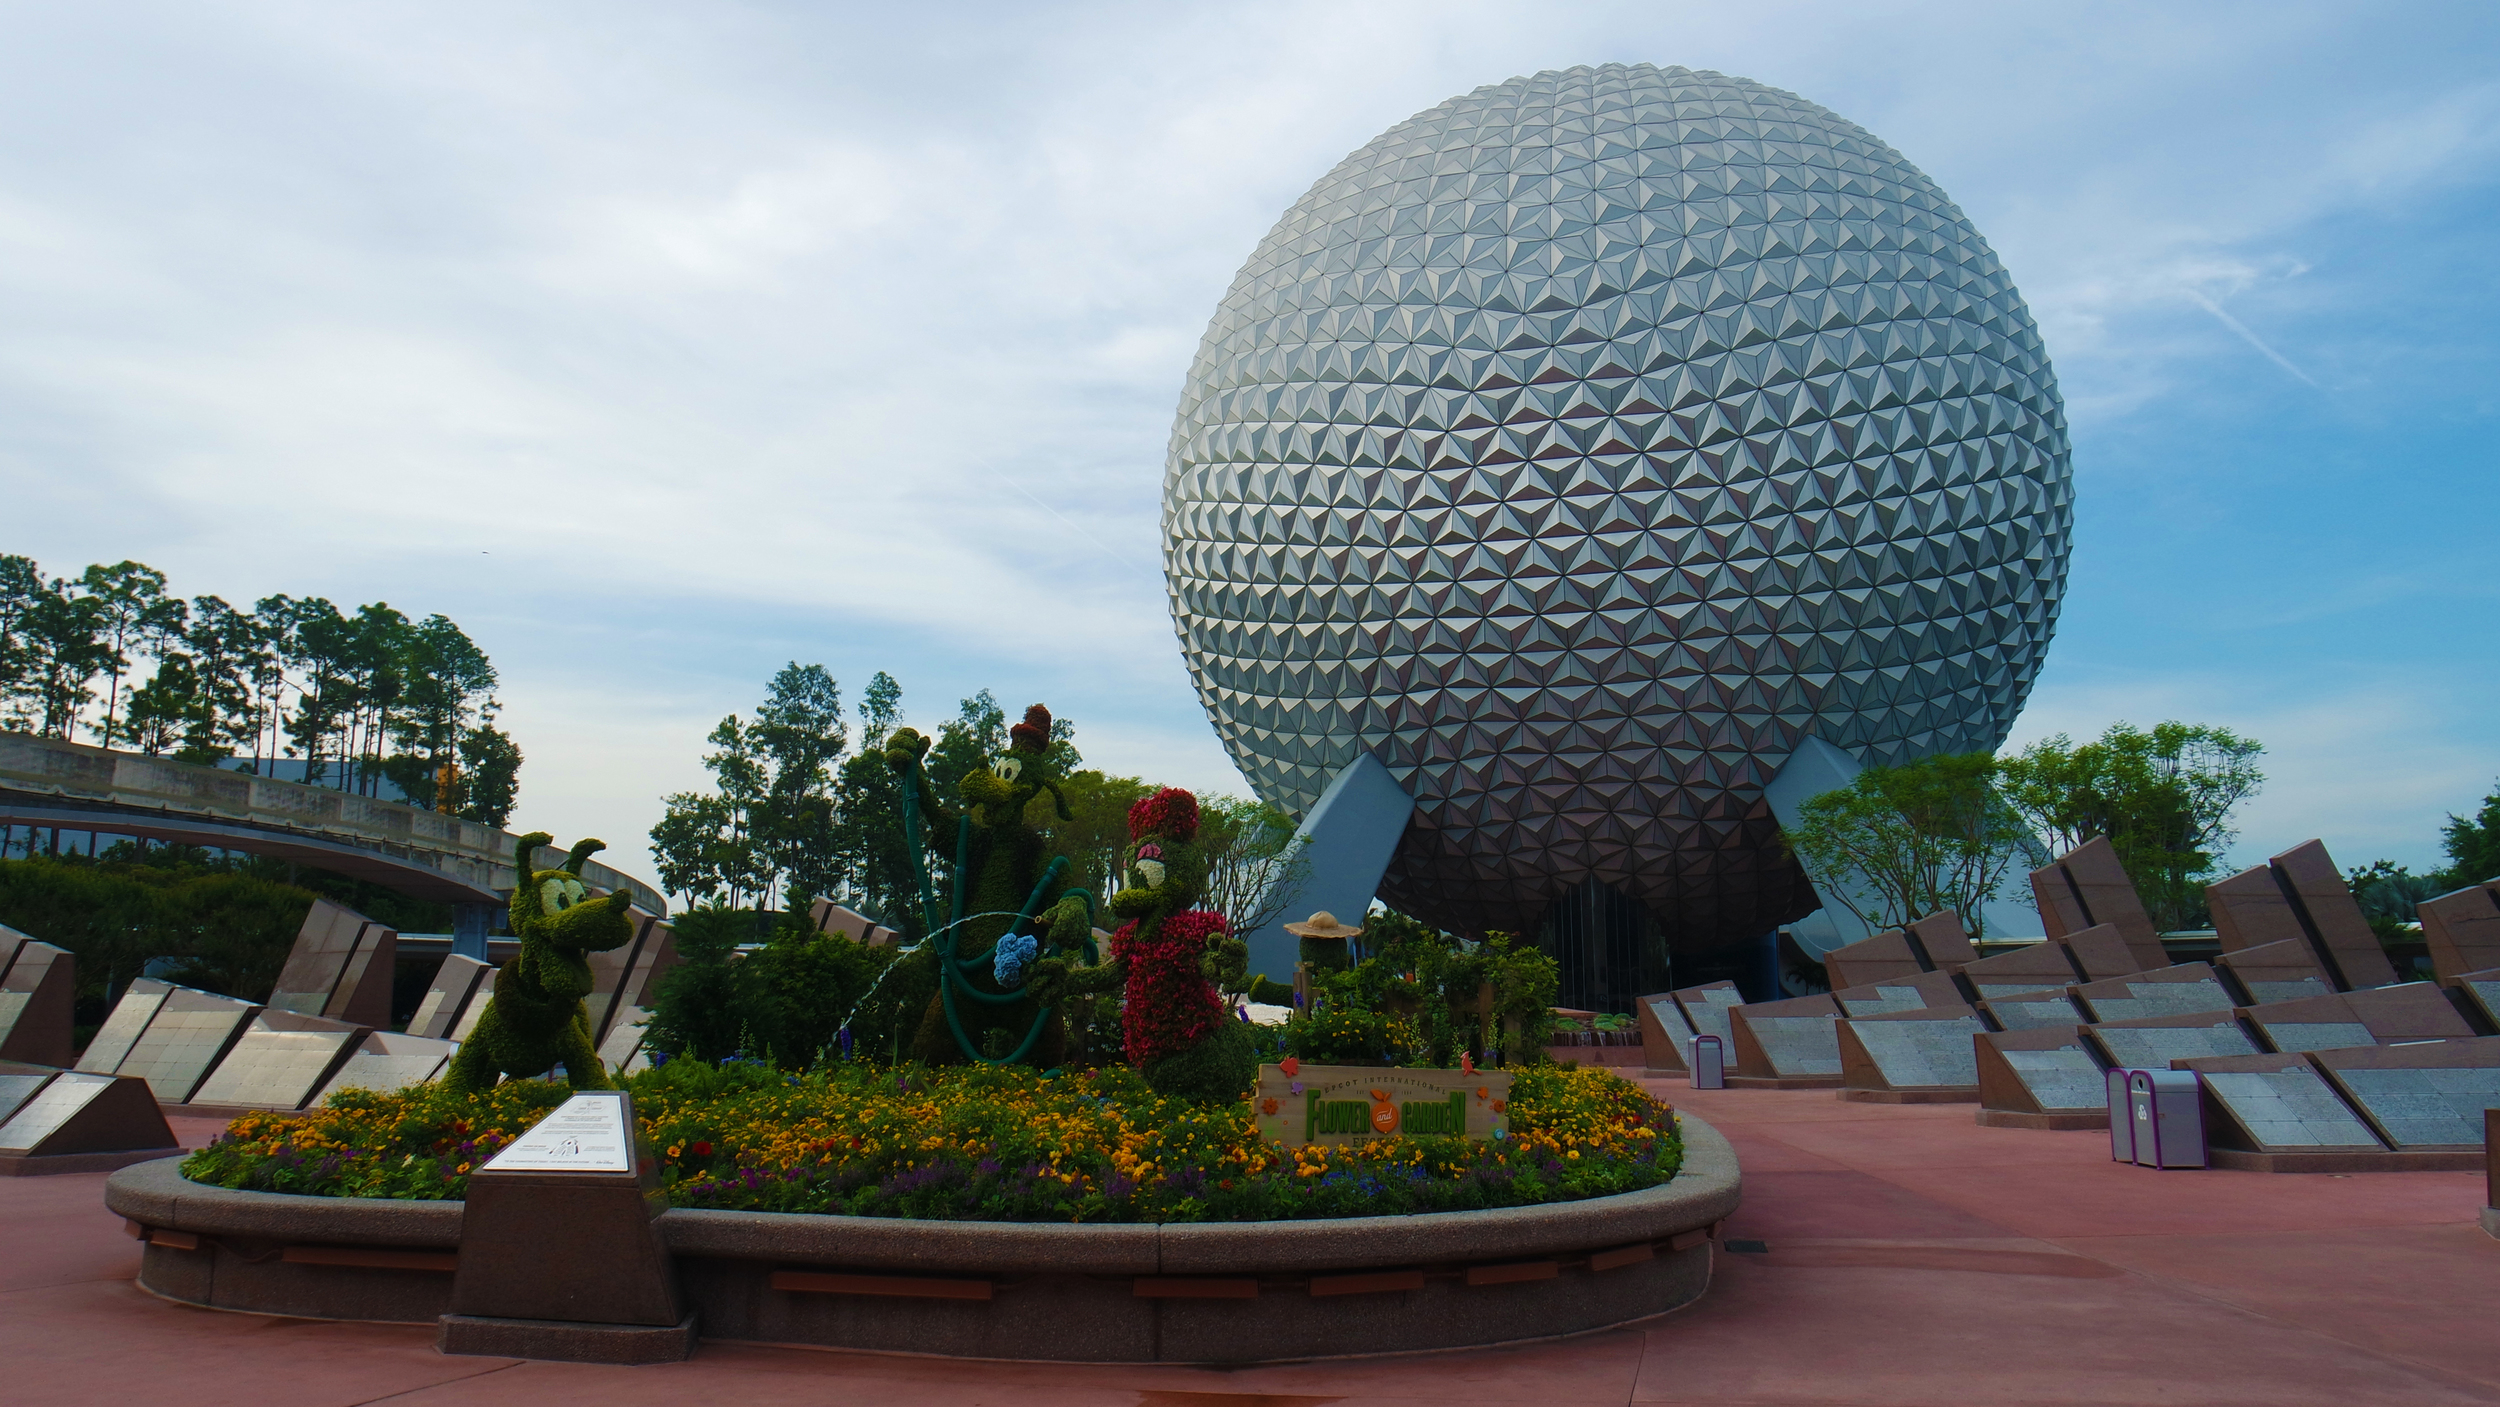 The first thing you see walking into Epcot